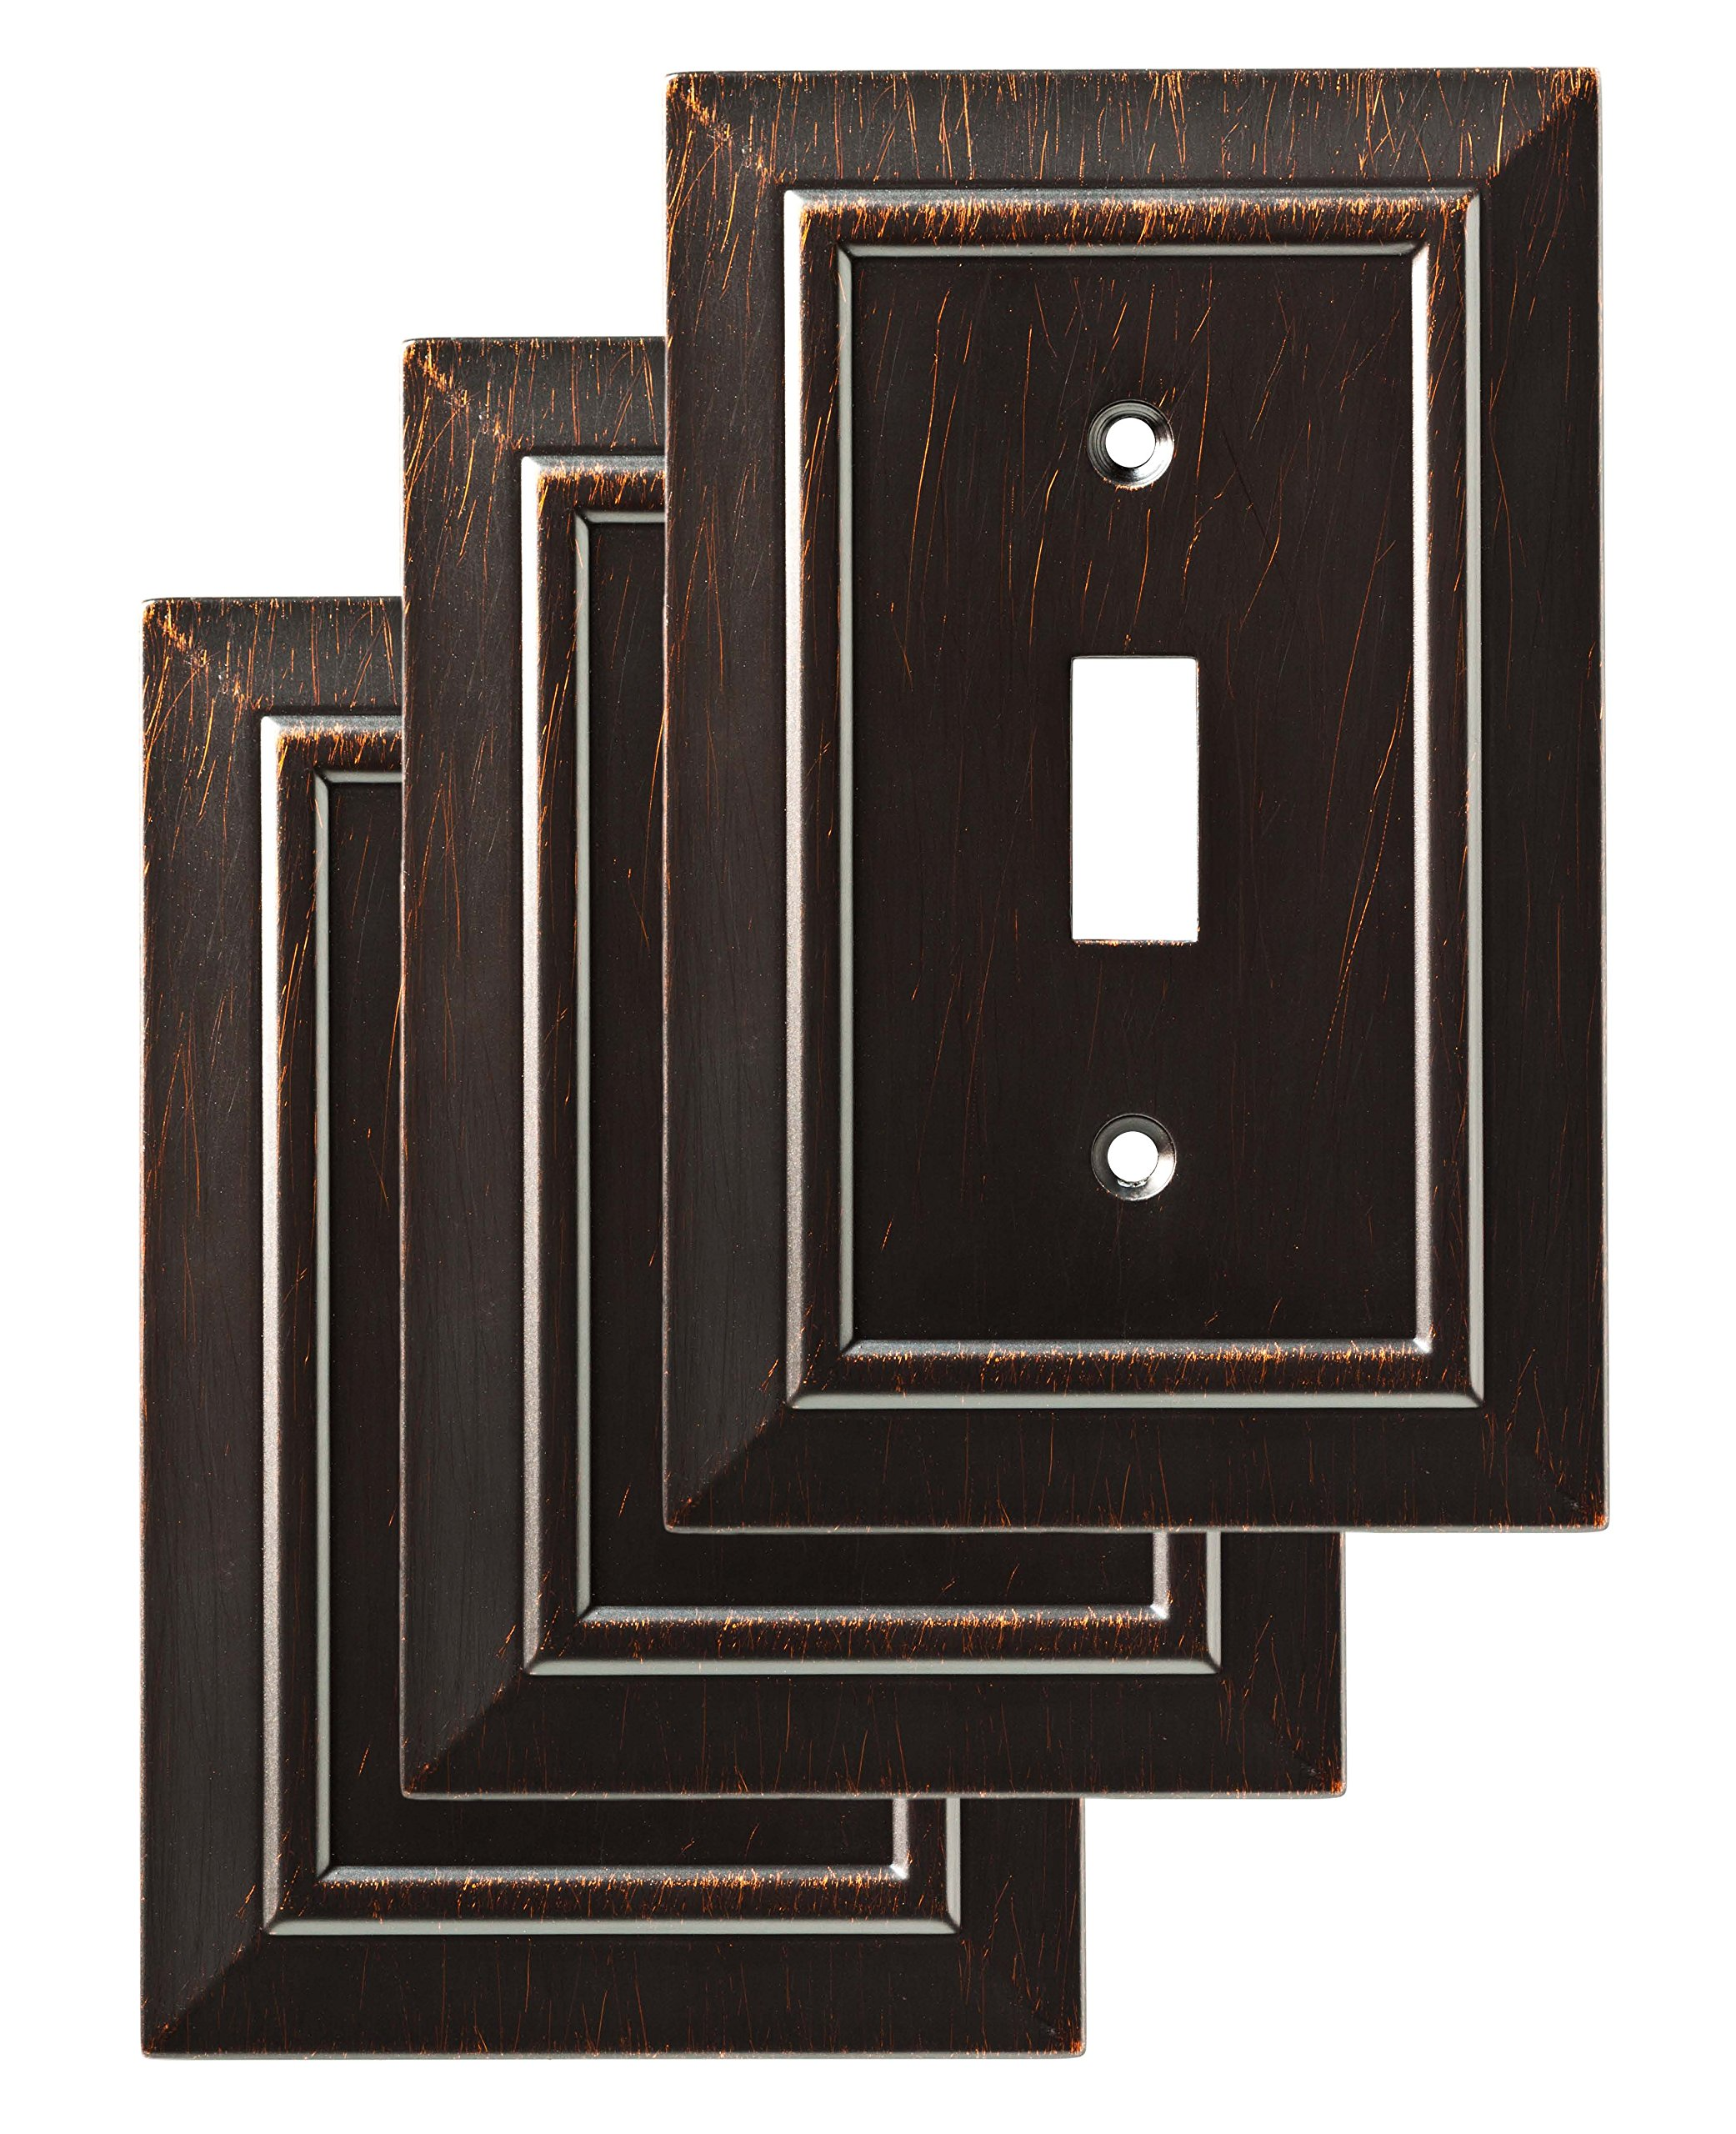 Franklin Brass W35217V-VBR-C Classic Architecture Single Switch Wall Plate/Switch Plate/Cover (3 Pack), Venetian Bronze by Franklin Brass